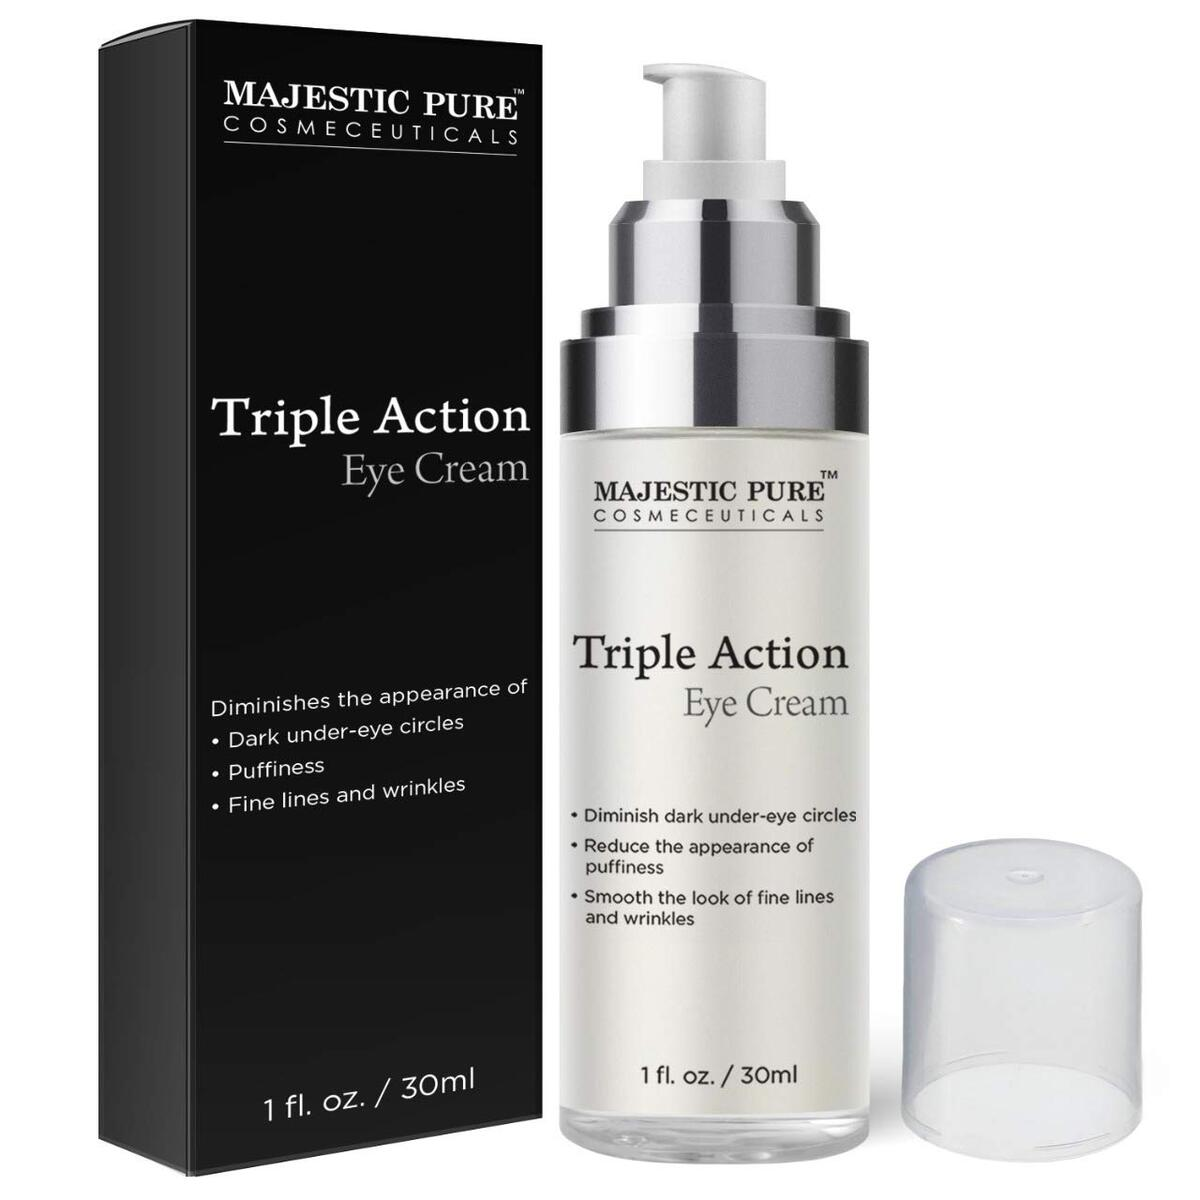 Triple Action Eye Cream by Majestic Pure - with Vitamin K - Eye Gel Cream Reduces the Appearance of Wrinkles, Dark Circles, Puffiness and Under Eye Bags - 1 fl oz